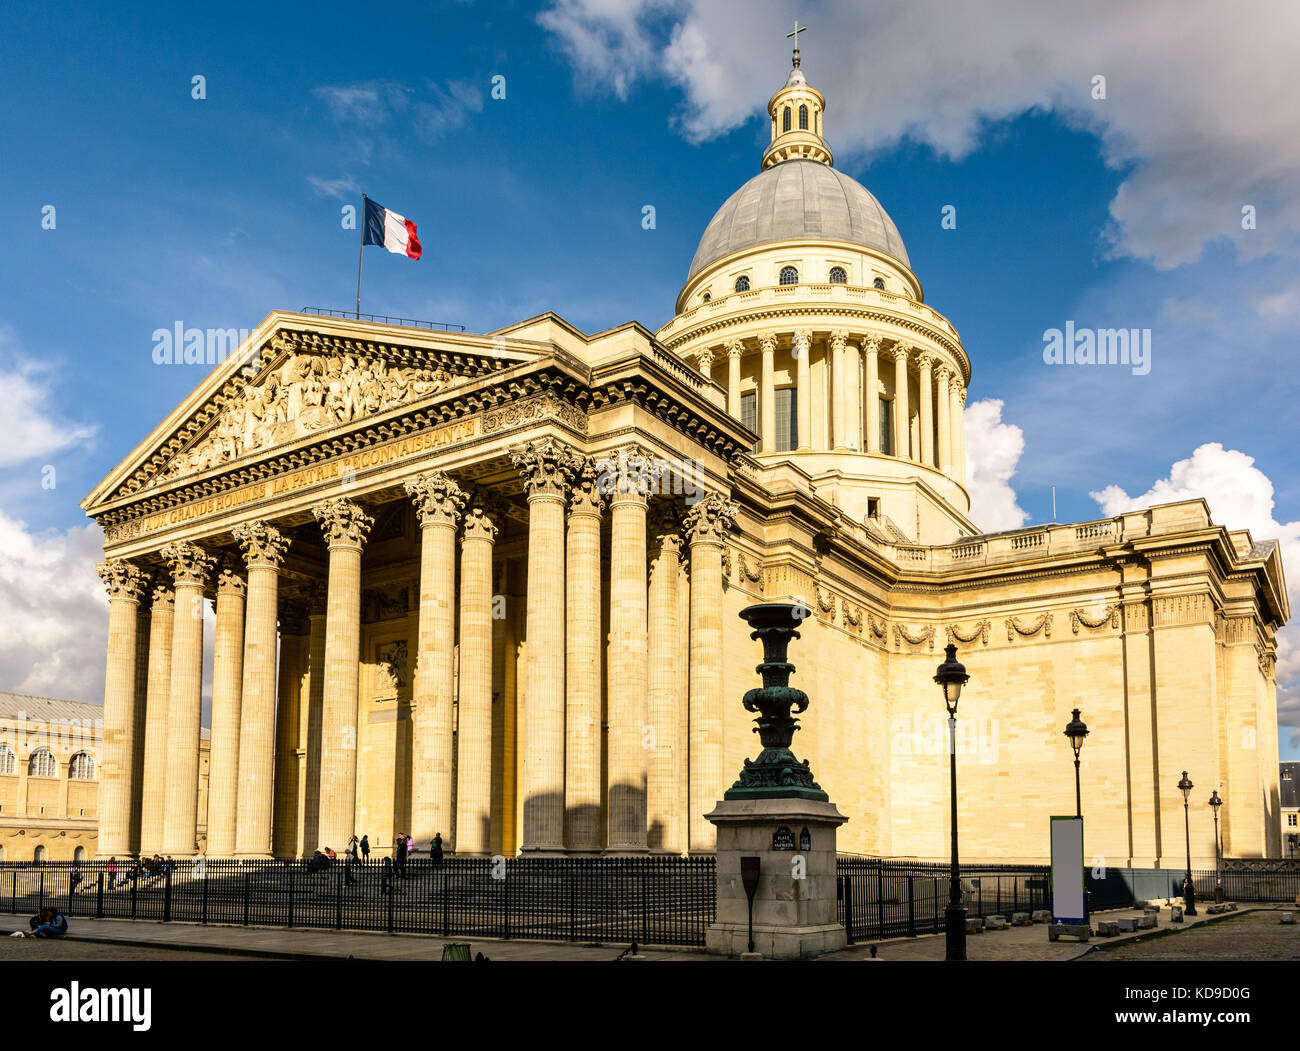 Three-quarter view of the Pantheon in Paris at sunset with the french flag flying in the wind. - Stock Image